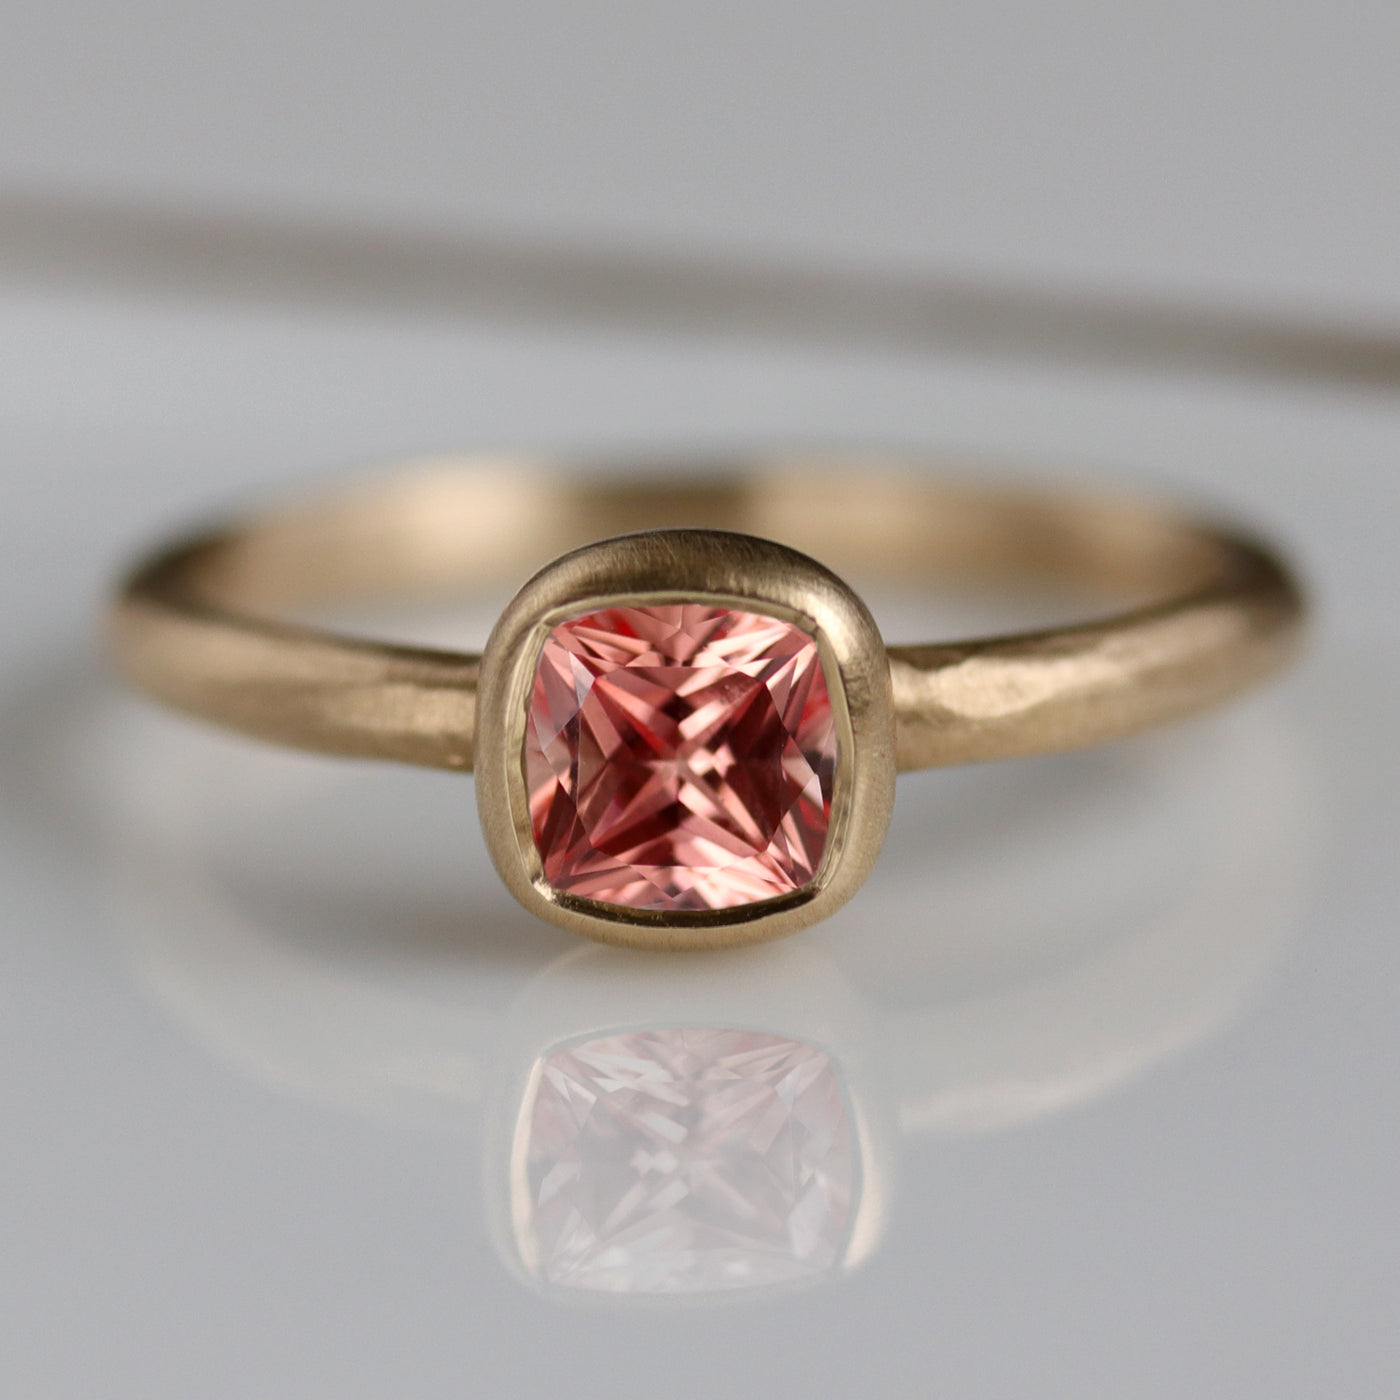 Rustic Cushion Solitaire Ring with Peach Sapphire in Yellow Gold